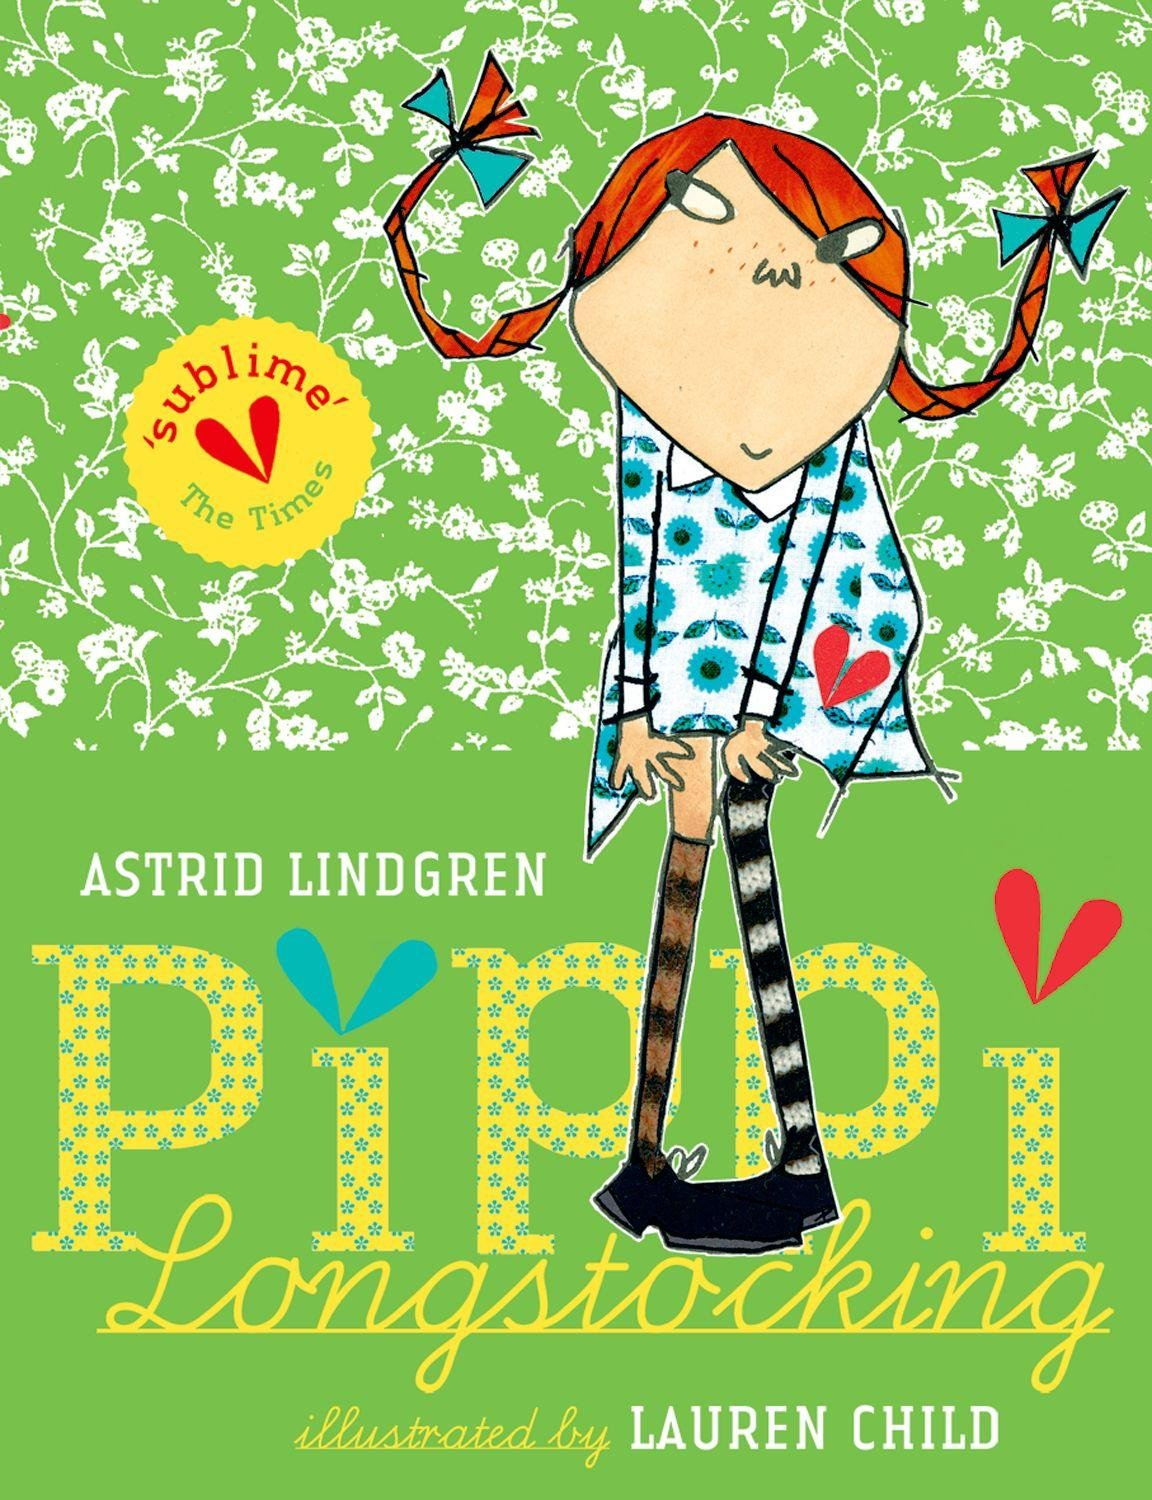 Pippi Longstocking written by Astrid Lindgren translated by Tiina Nunnally illustrated by Lauren Child